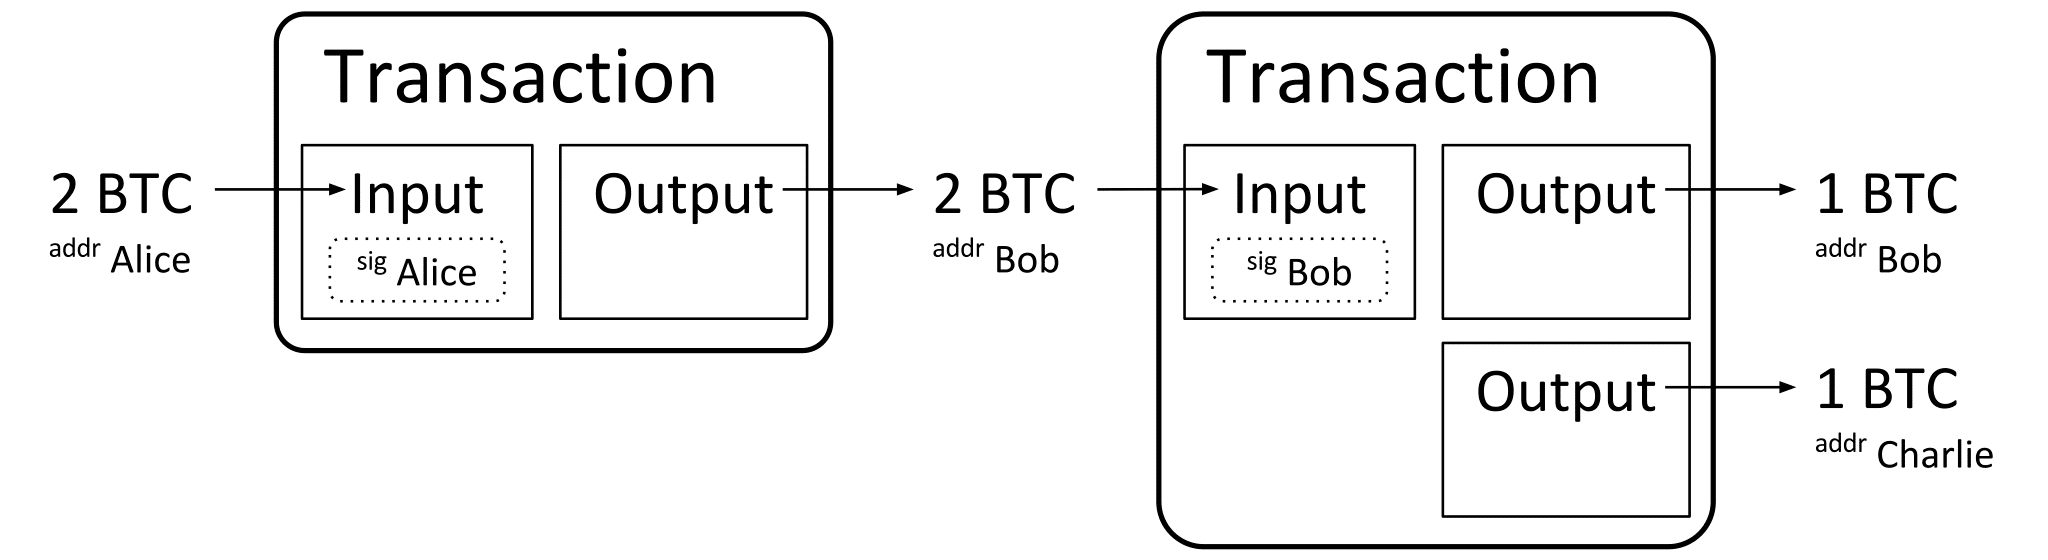 A high-level skeleton diagram of a Bitcoin transaction